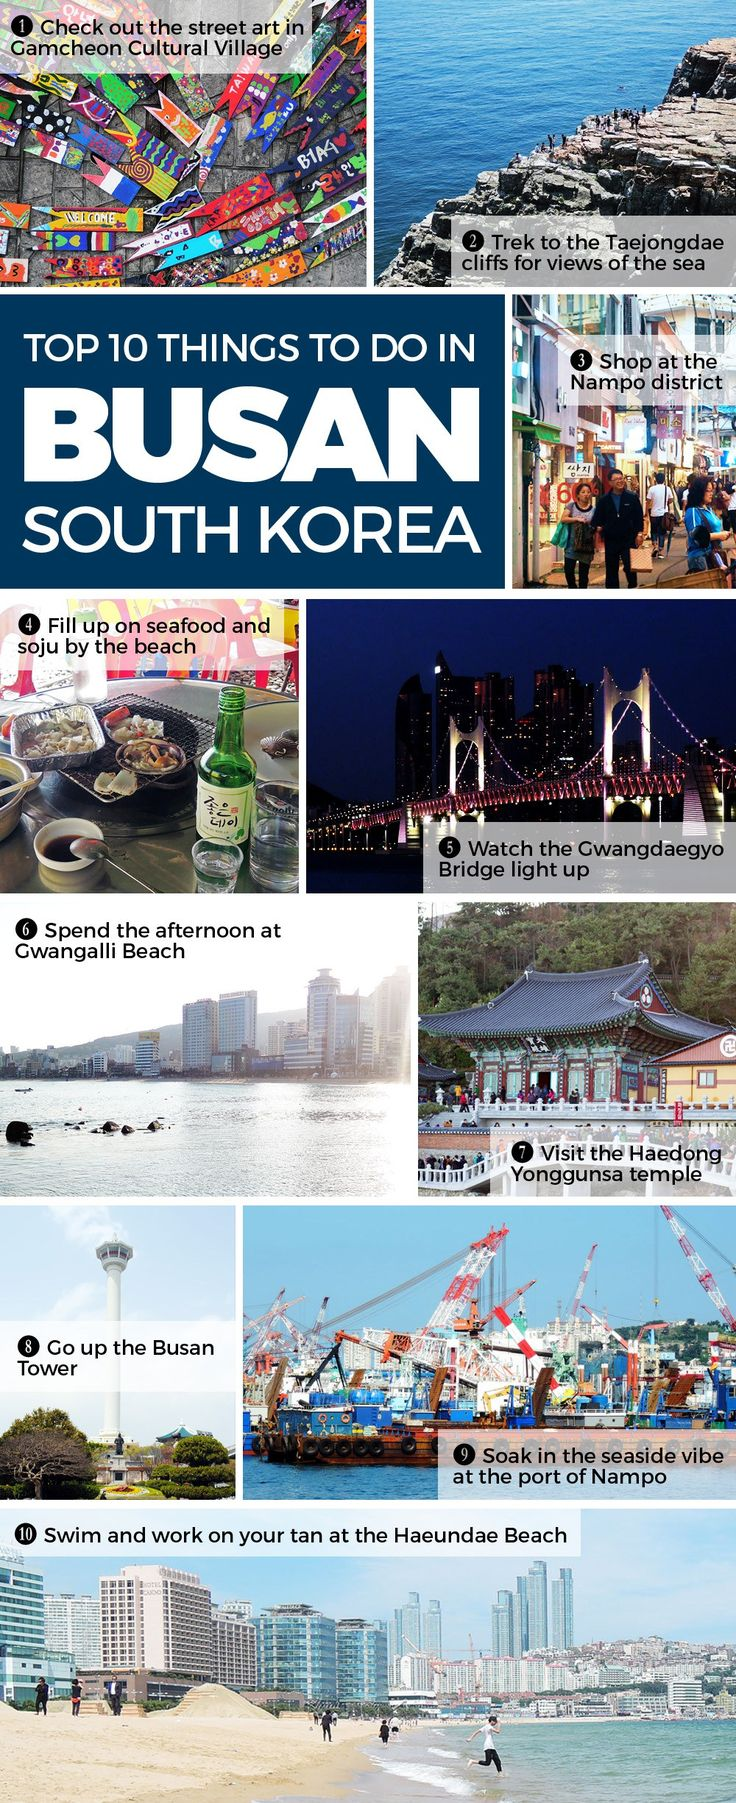 Top 10 things to do in Busan: For a laidback seaside city, Busan certainly has a lot to offer. Foodie, shopaholic, nature lover, or culture buff, Busan's got your covered. Check out the top things to do in Busan and click through for a detailed guide!